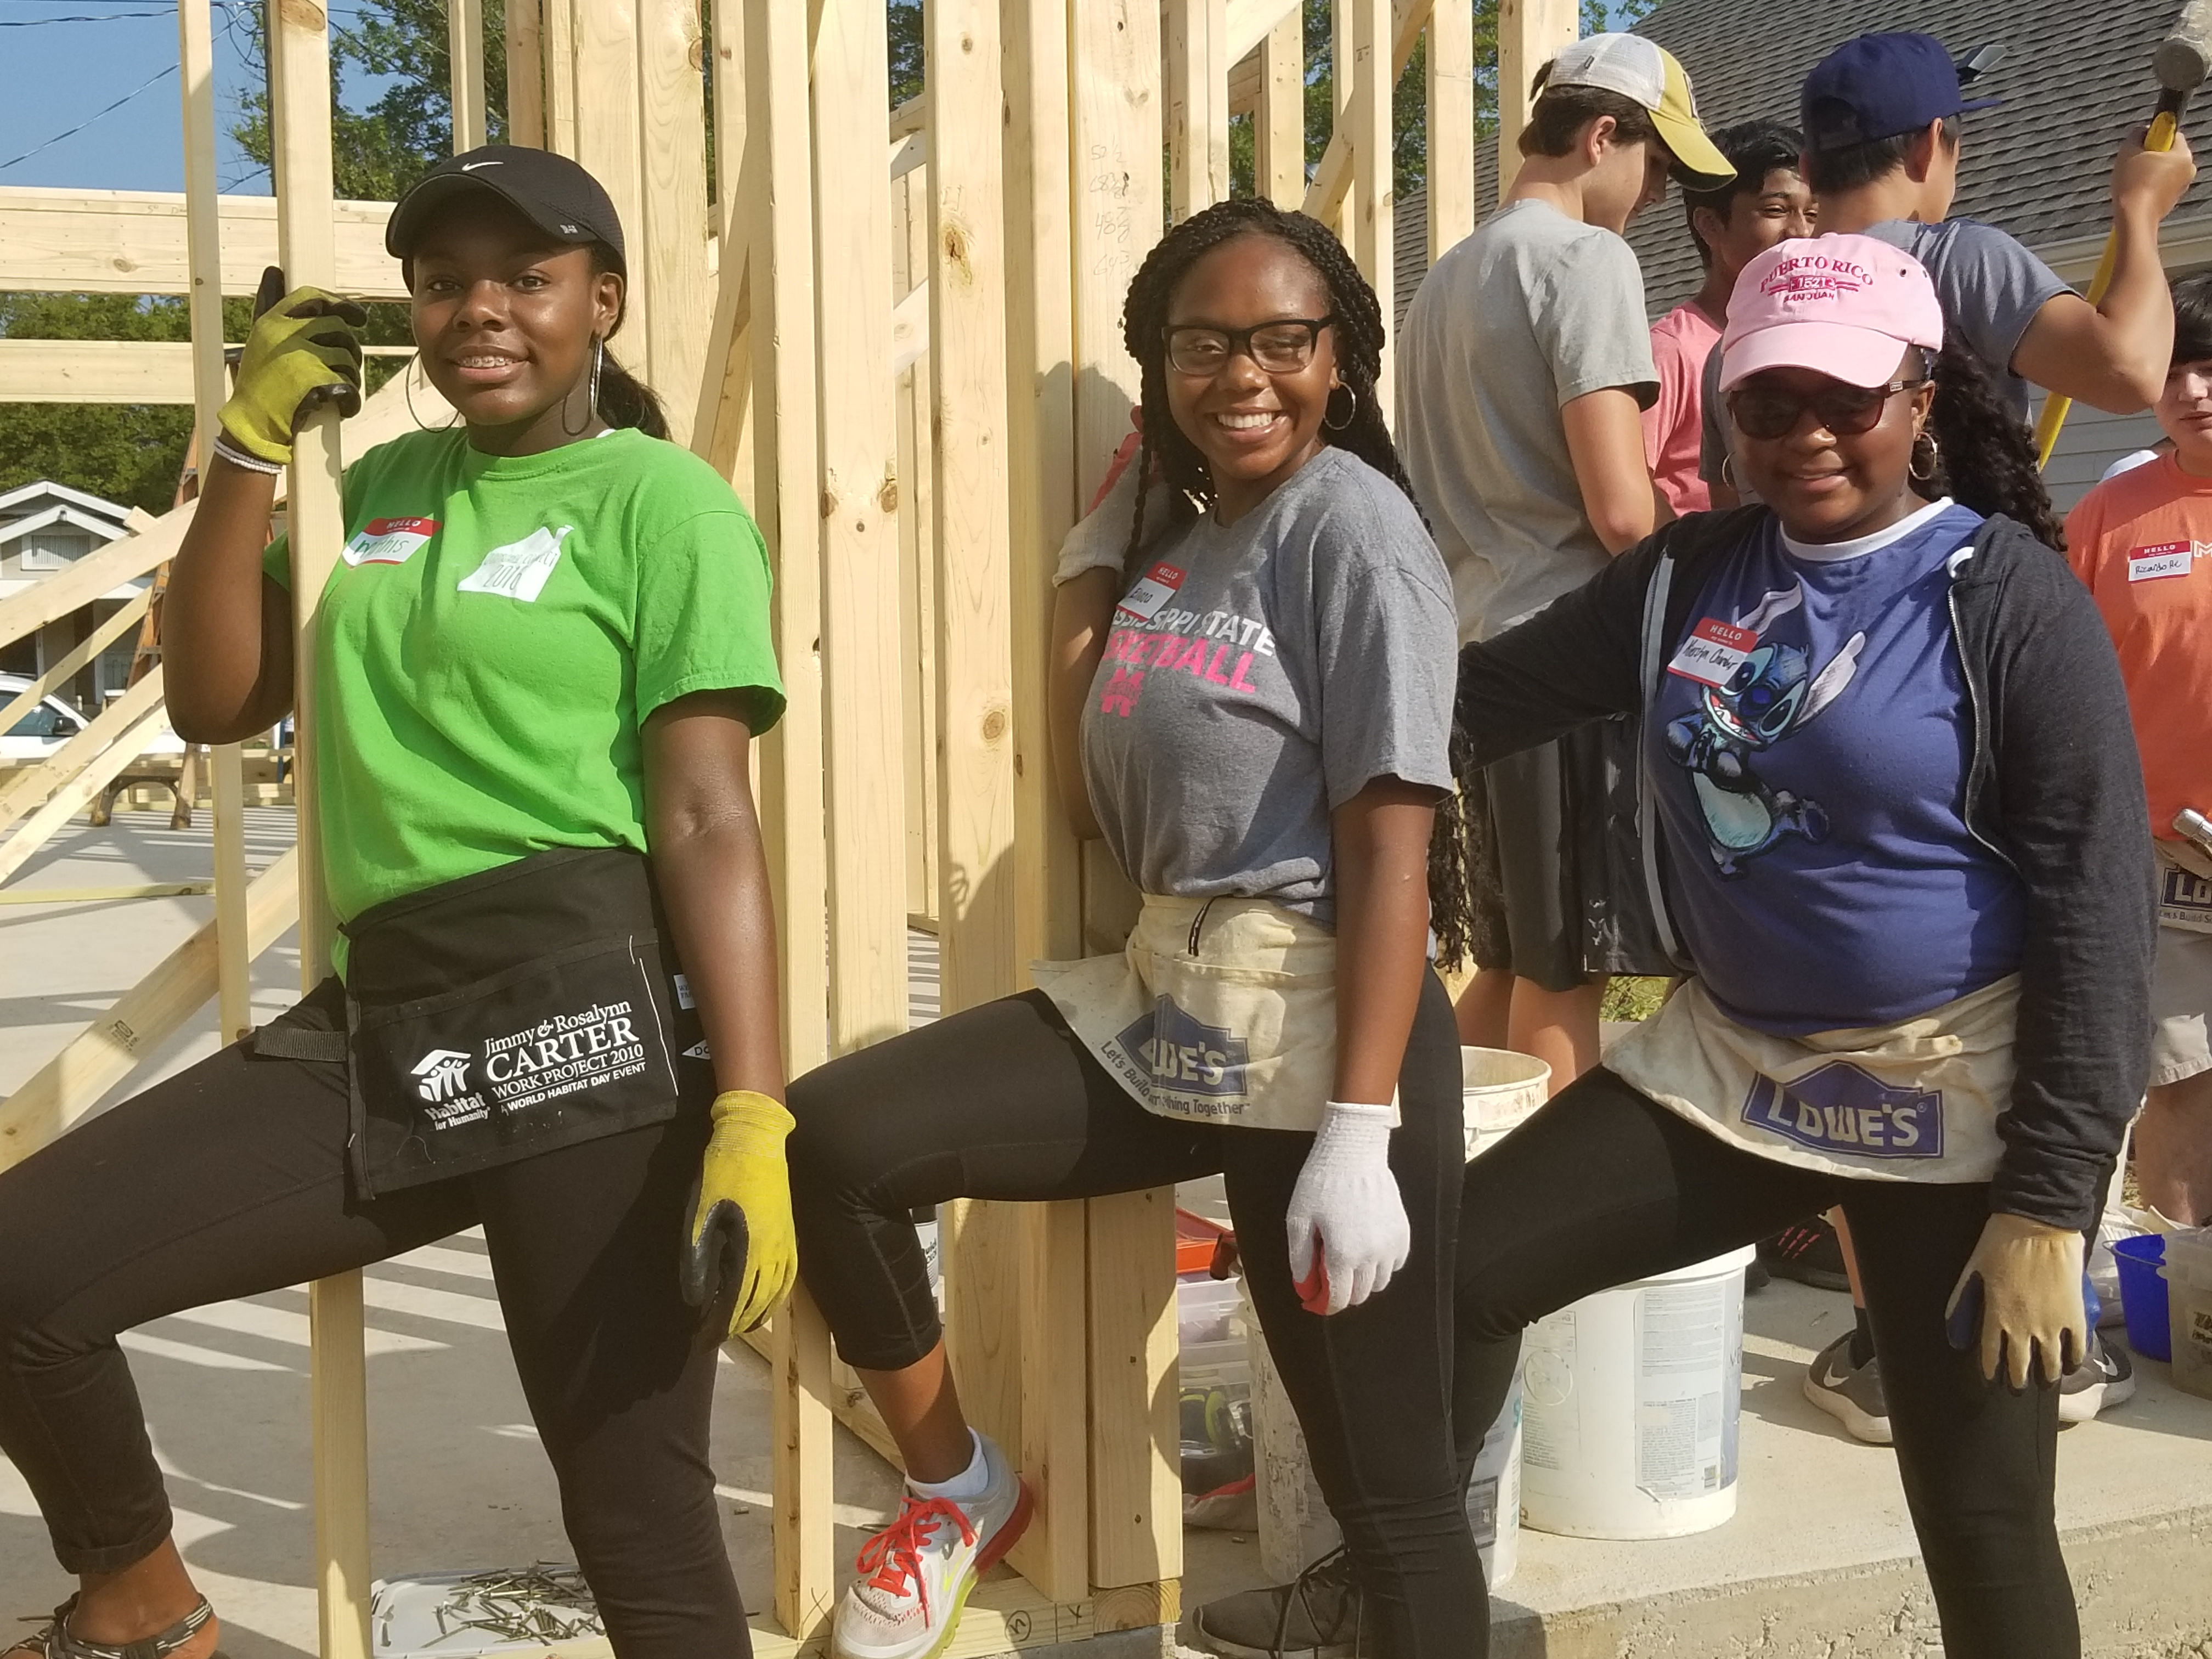 (YAC Service Day) – Habitat for Humanity in Eastlake (another blighted area on its way back)